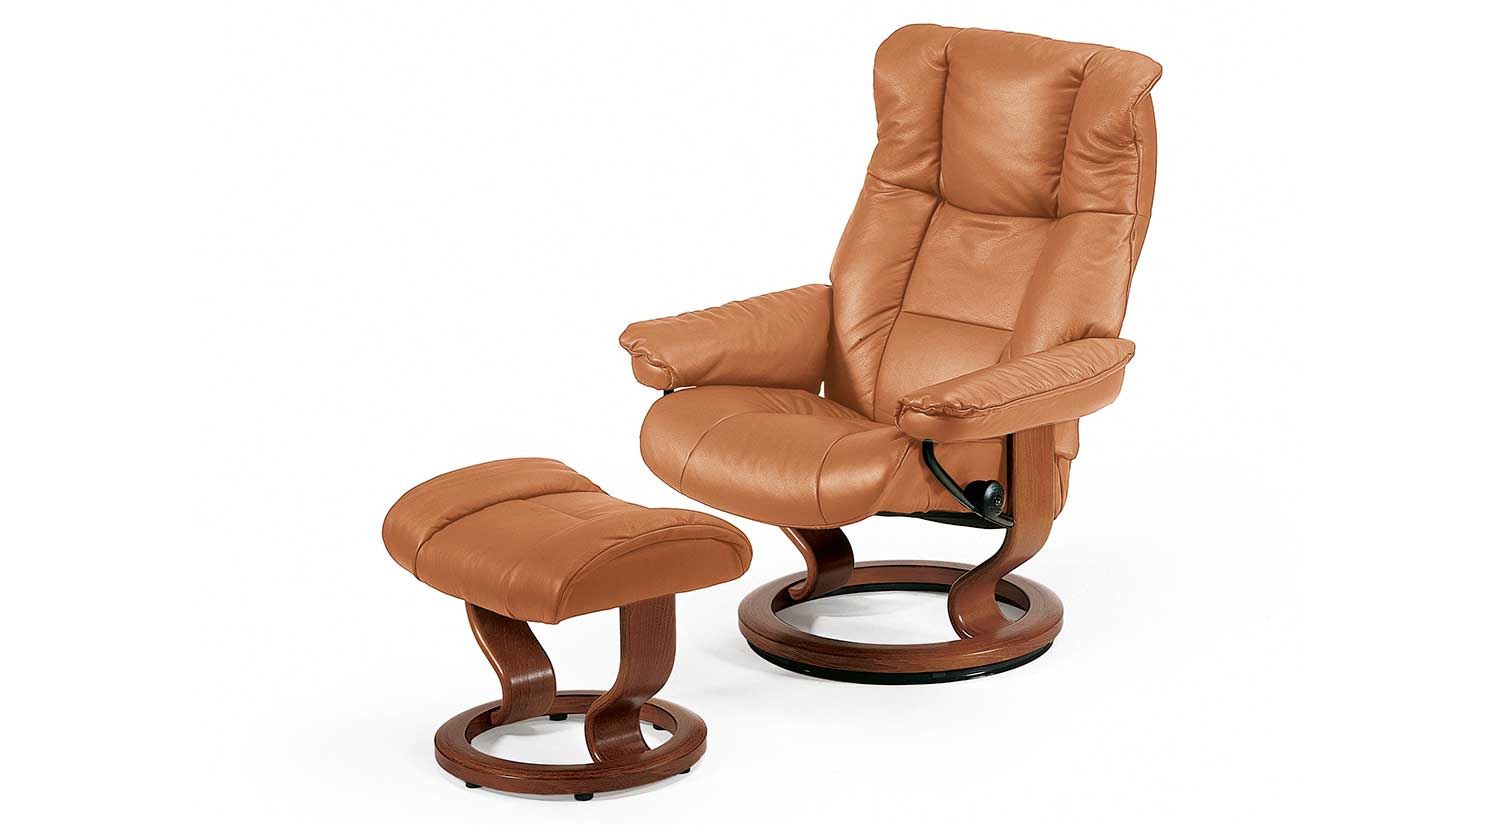 Stressless Sofa And Chairs Circle Furniture Mayfair Recliner Stressless Ma